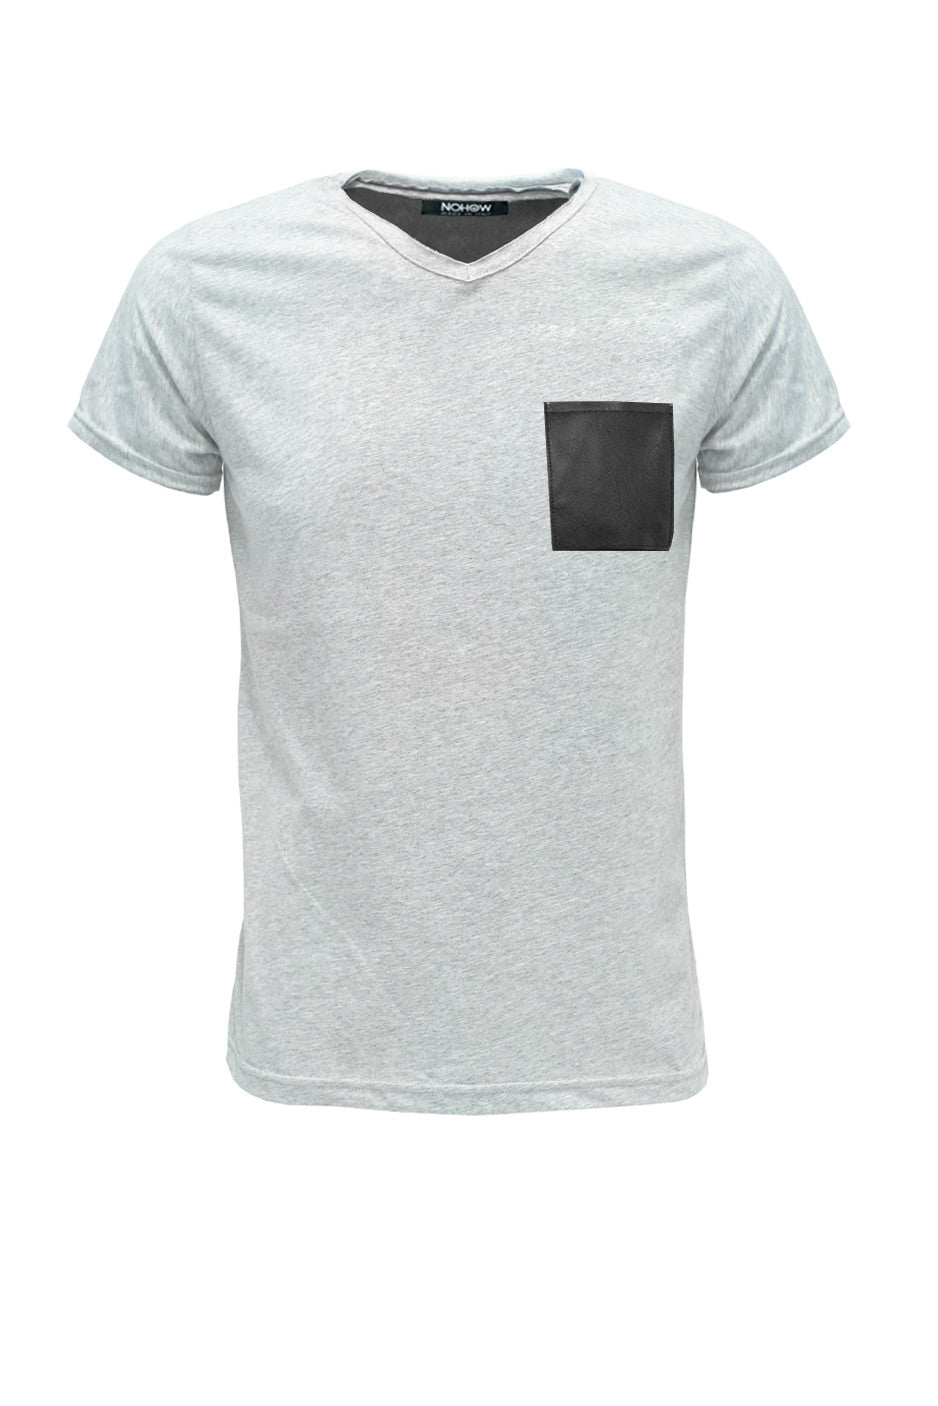 GREY BLACK T-SHIRT